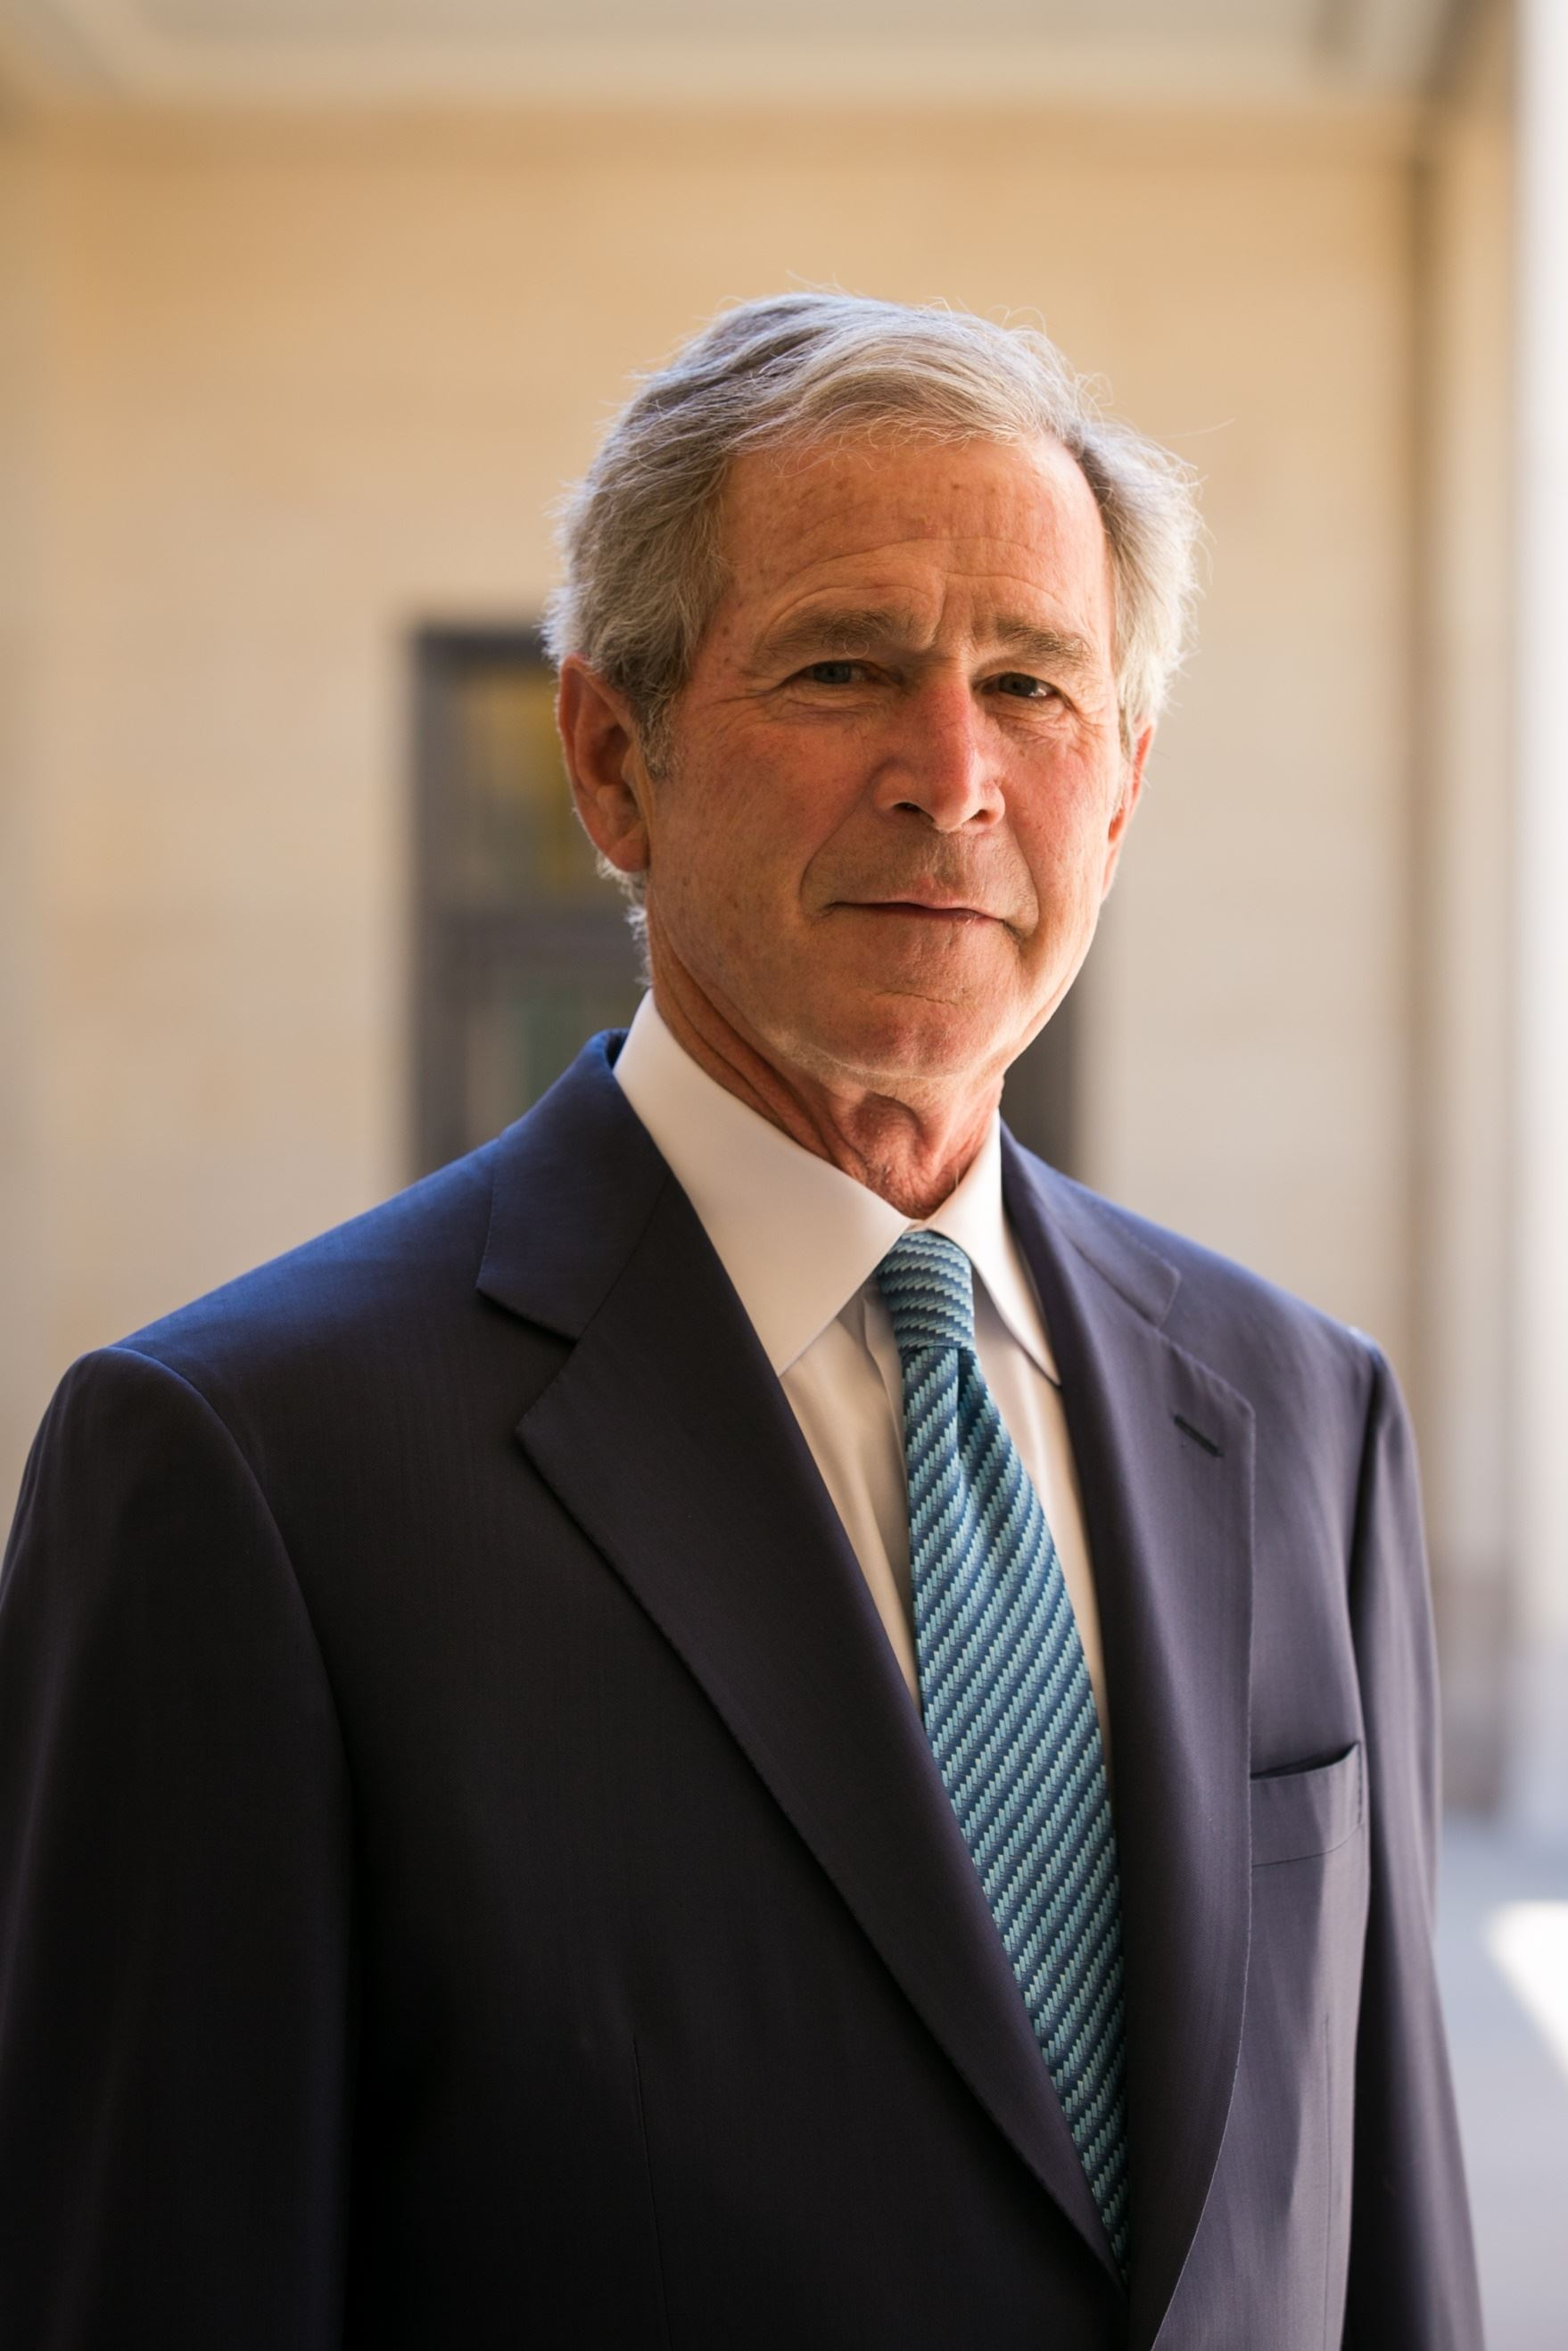 Bush George W PROMOPIC